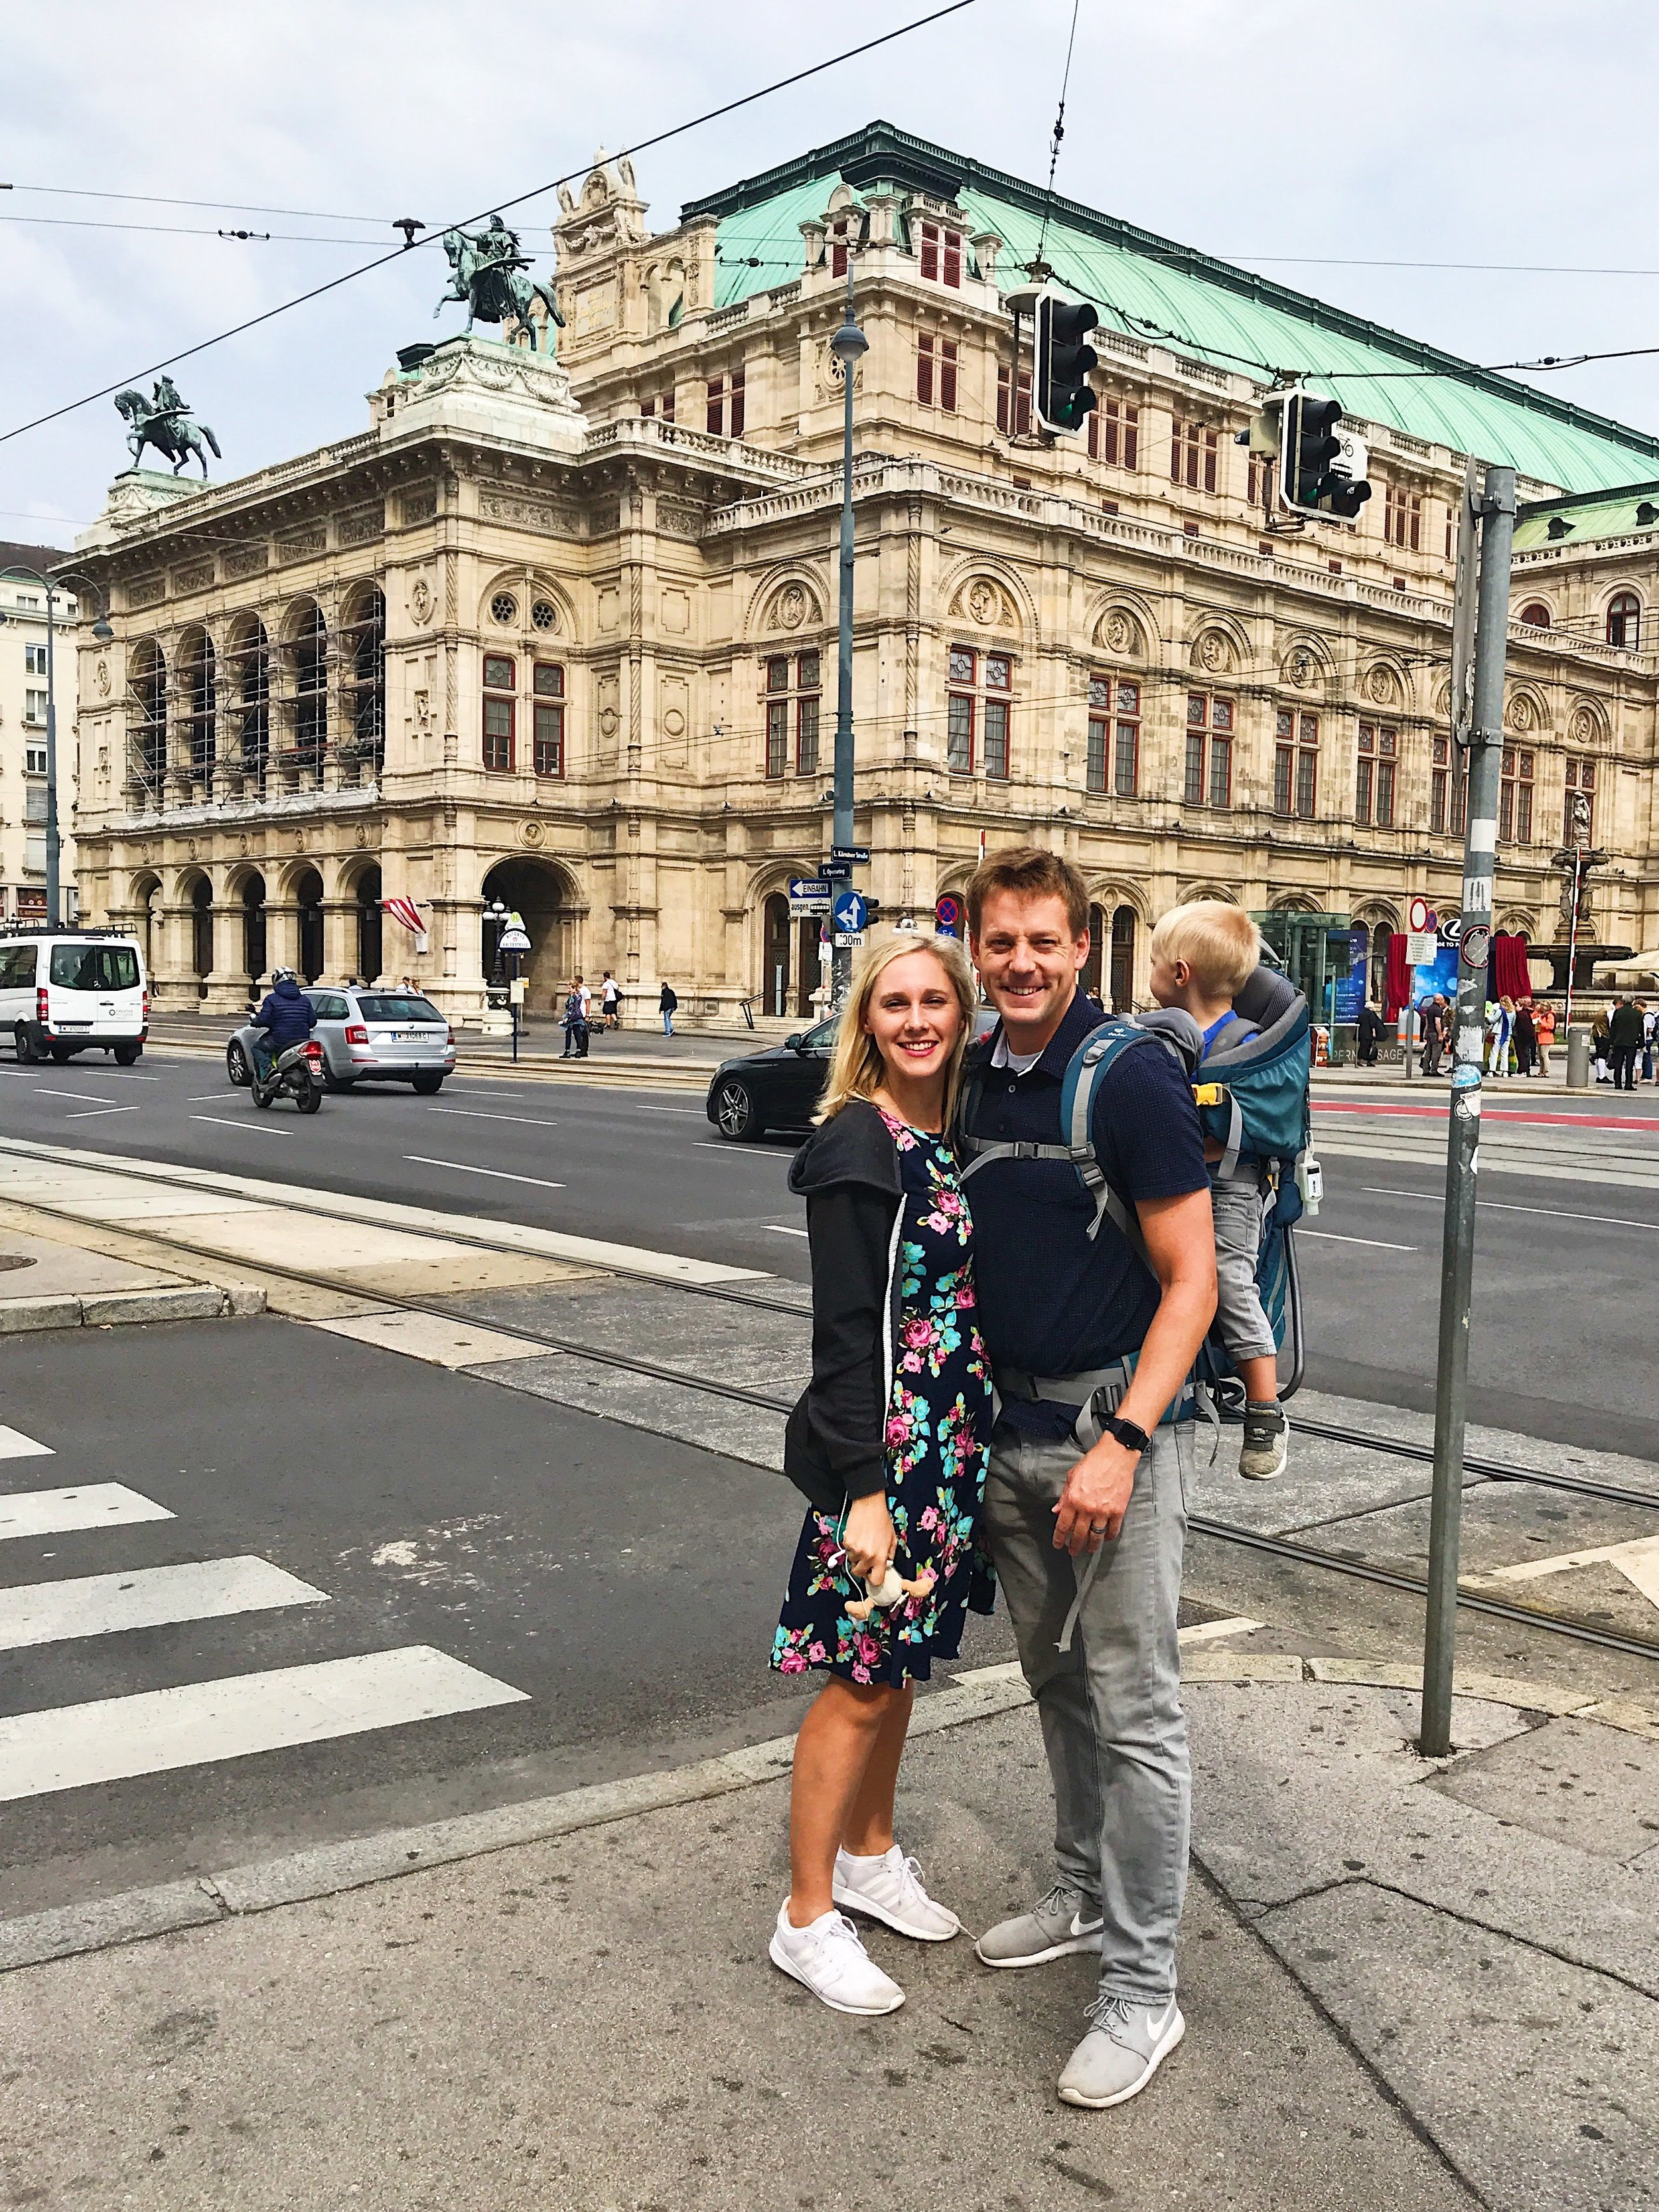 Trip to Austria: $489 RT on american airlines during Peak summer Travel time. Obviously the baby was more impressed with the vienna opera house than the camera.